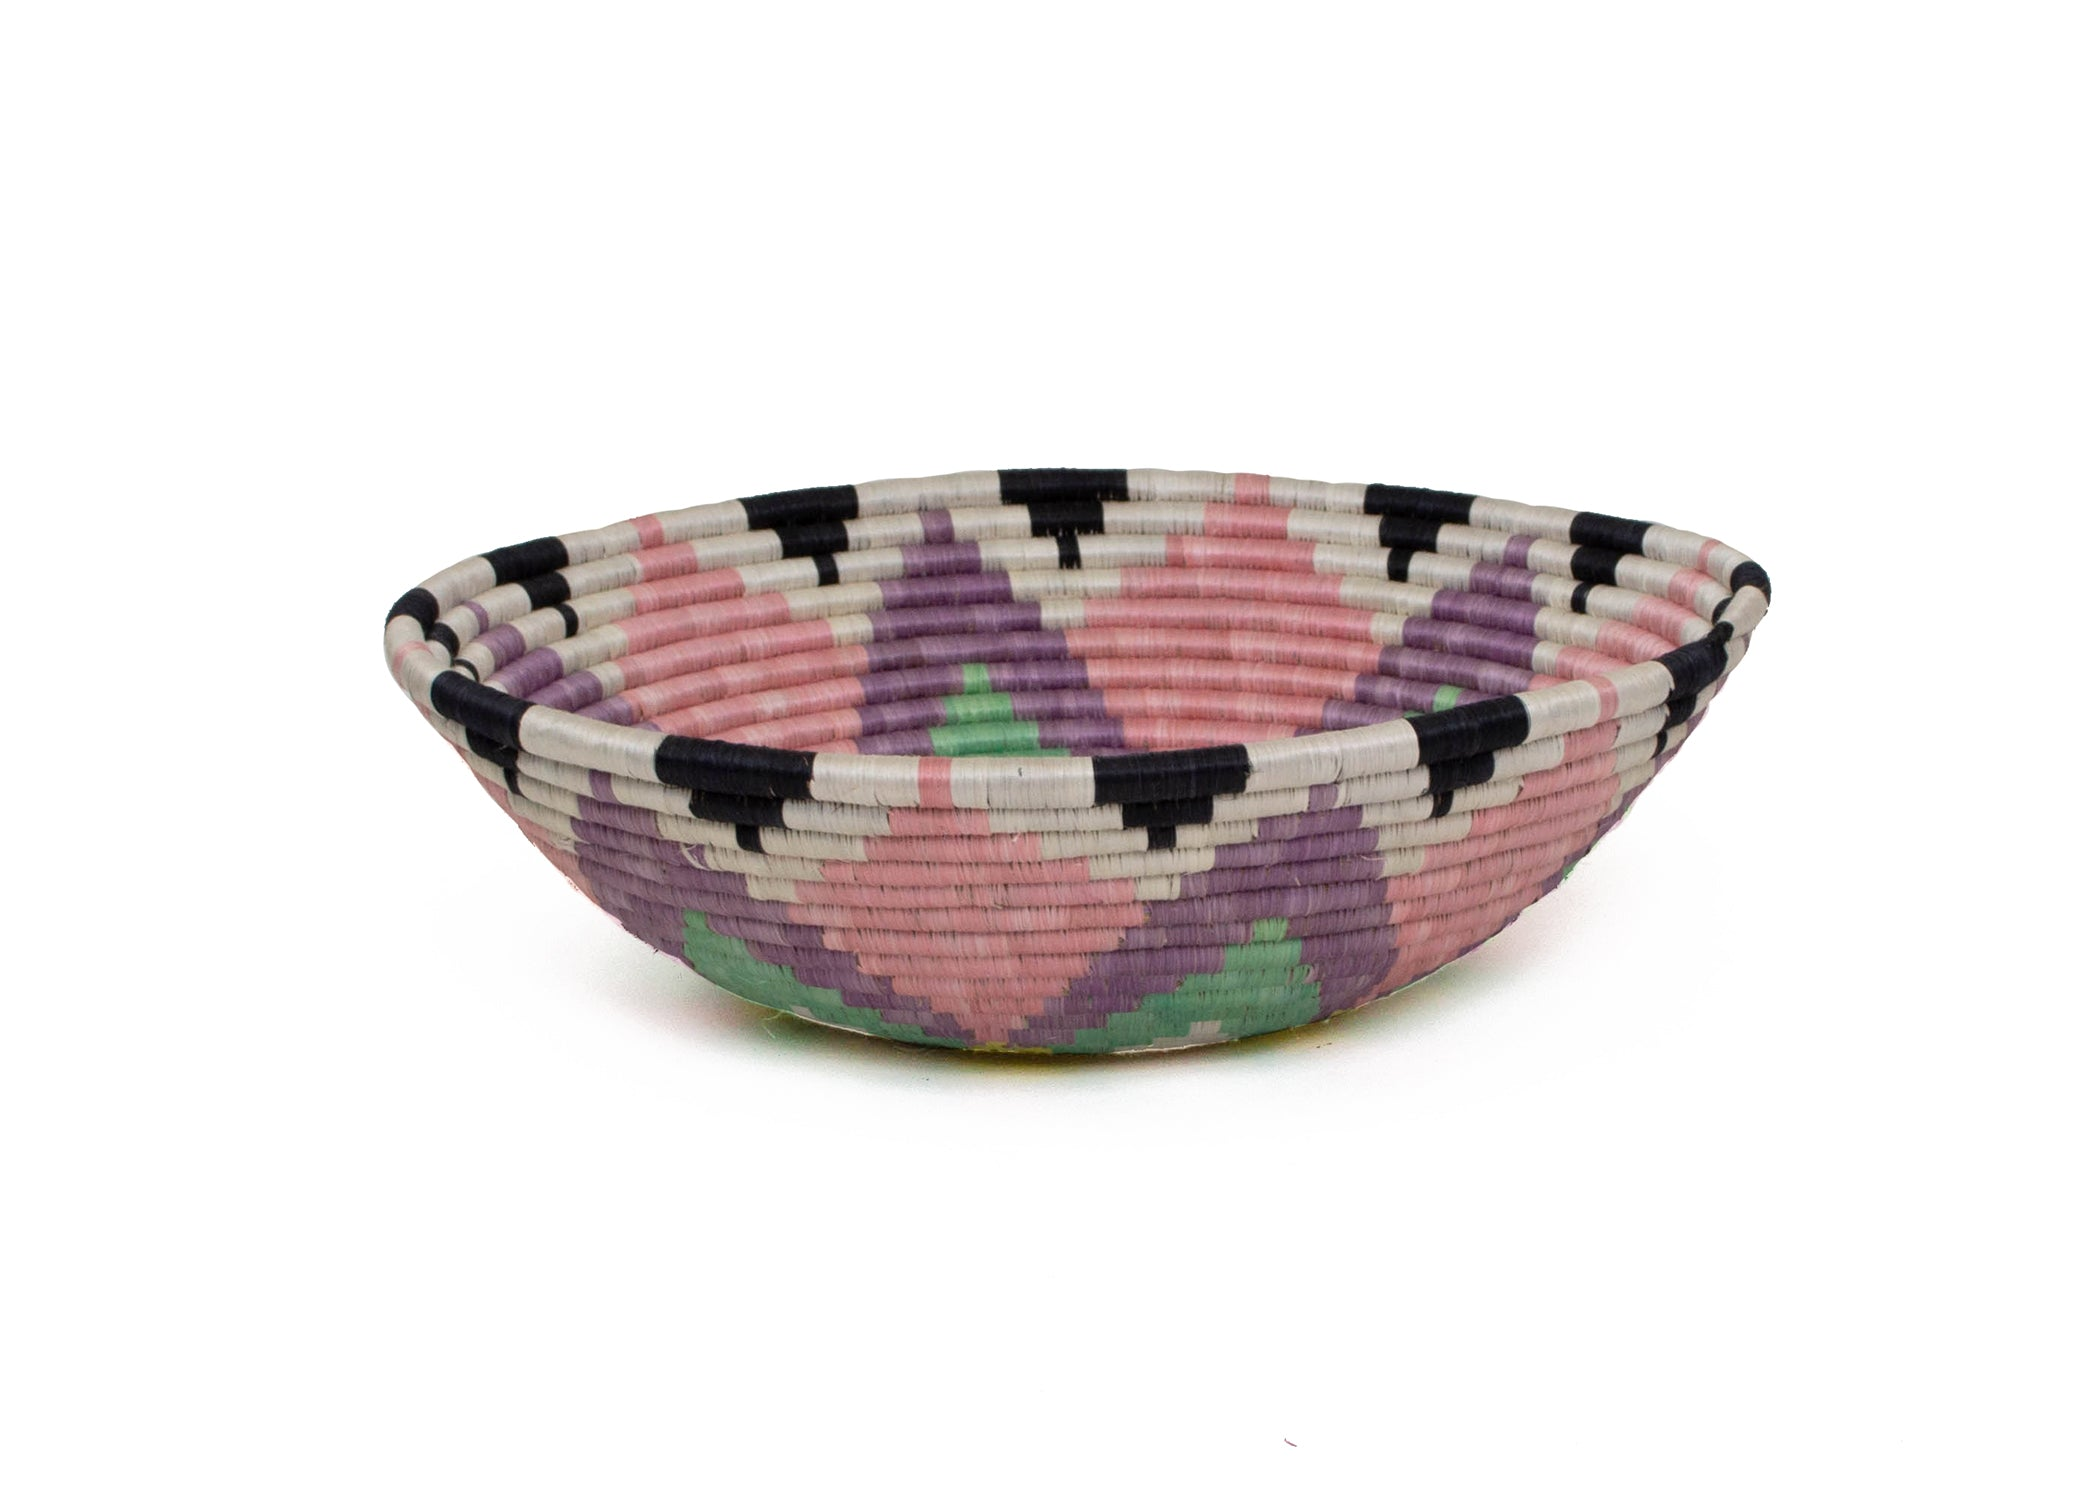 Jumbo Rhapsody Bowl - KAZI - Artisan made high quality home decor and wall art